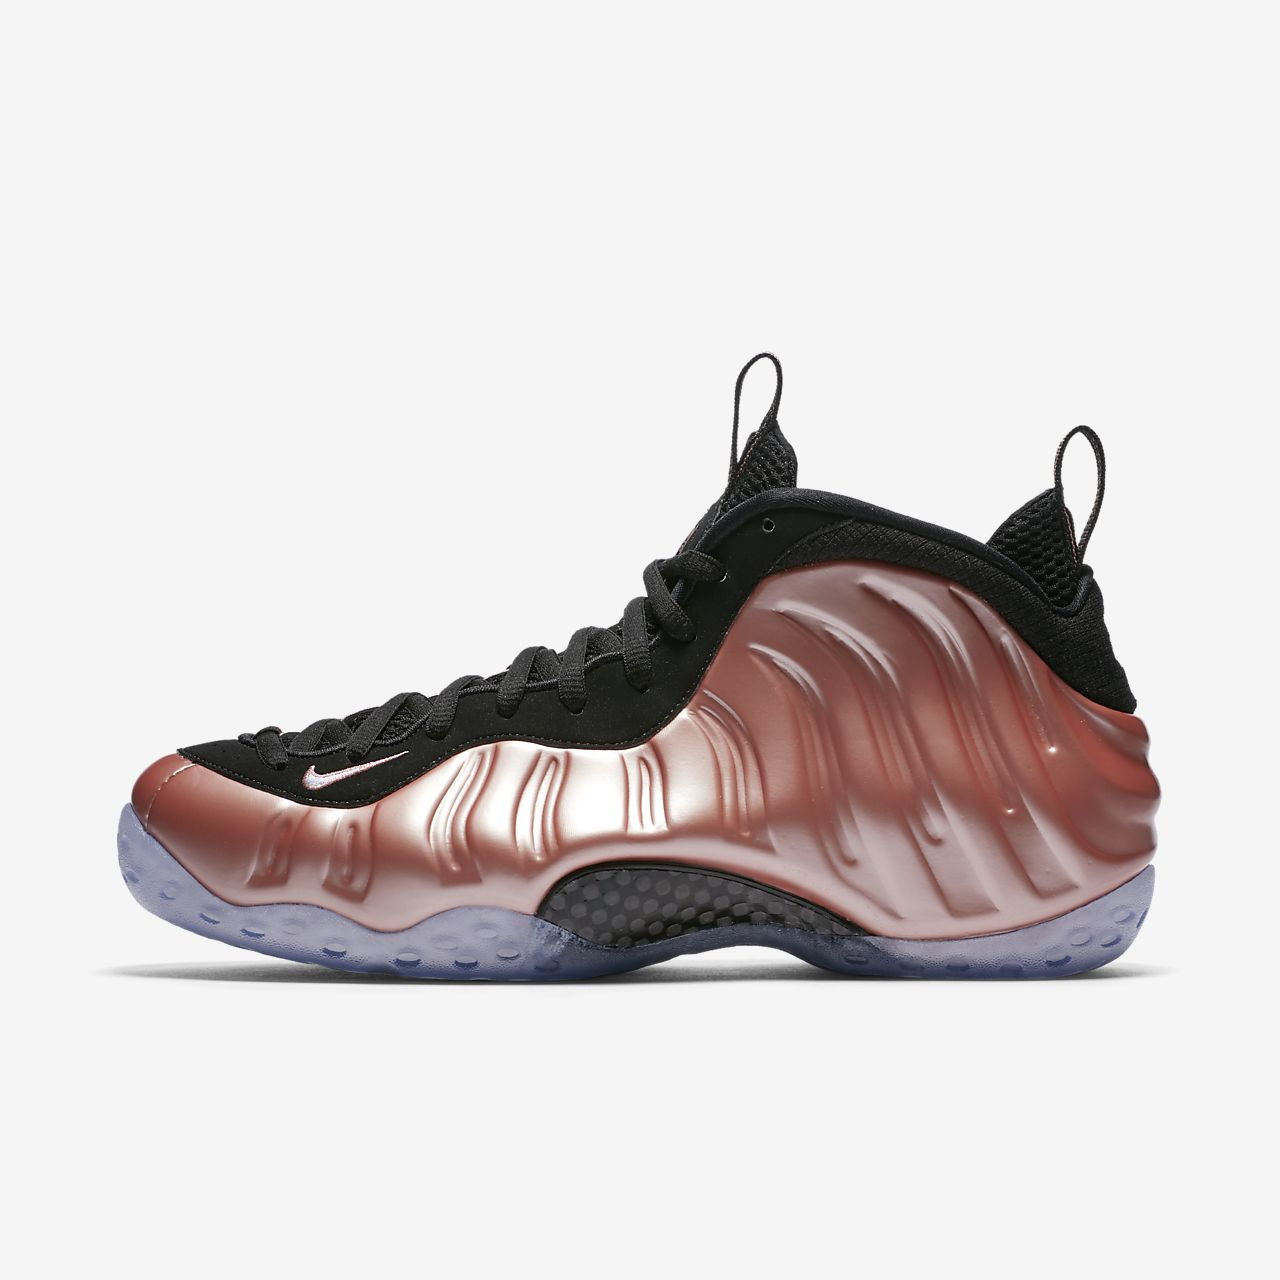 Nike Air Foamposite One 男子运动鞋